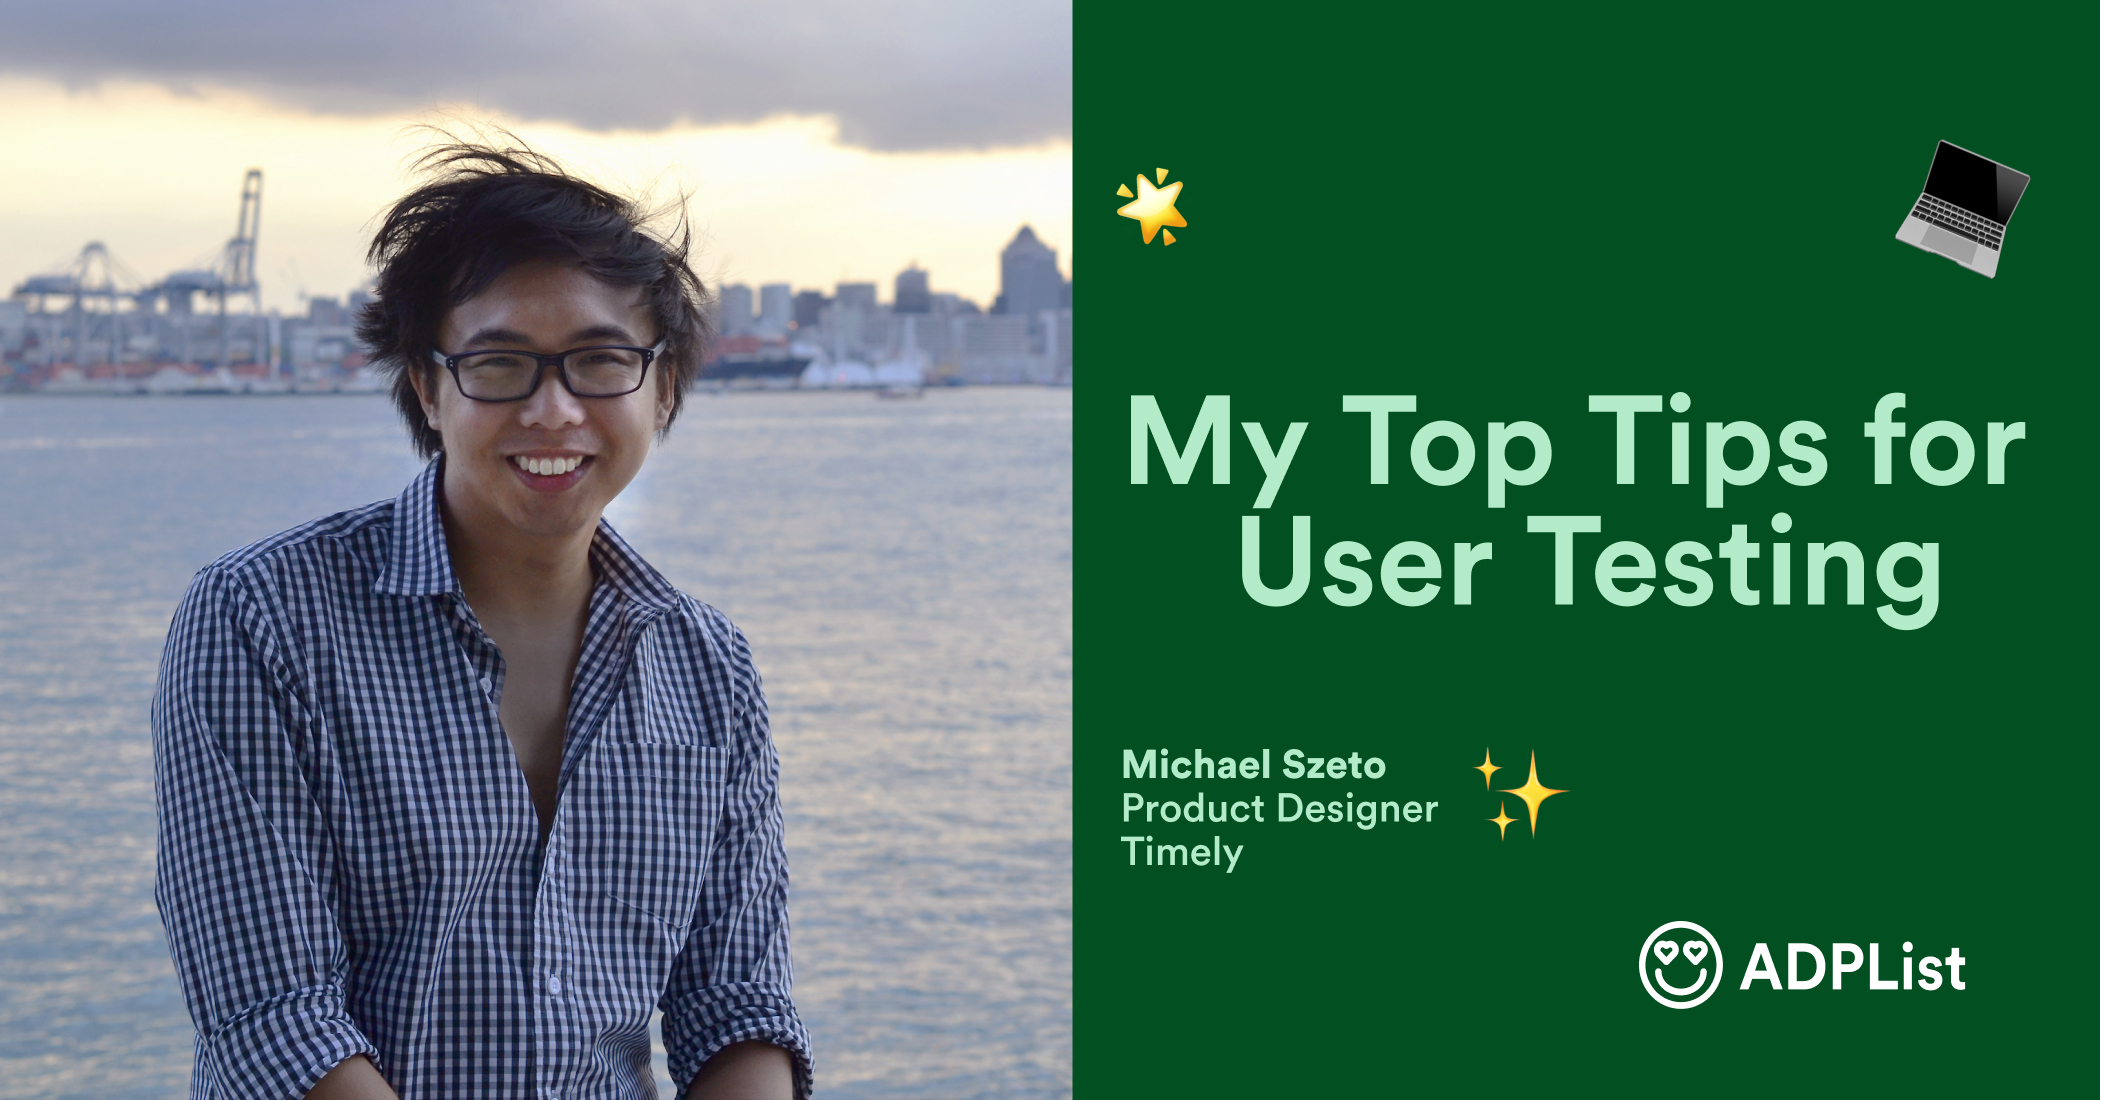 My Top Tips for User Testing